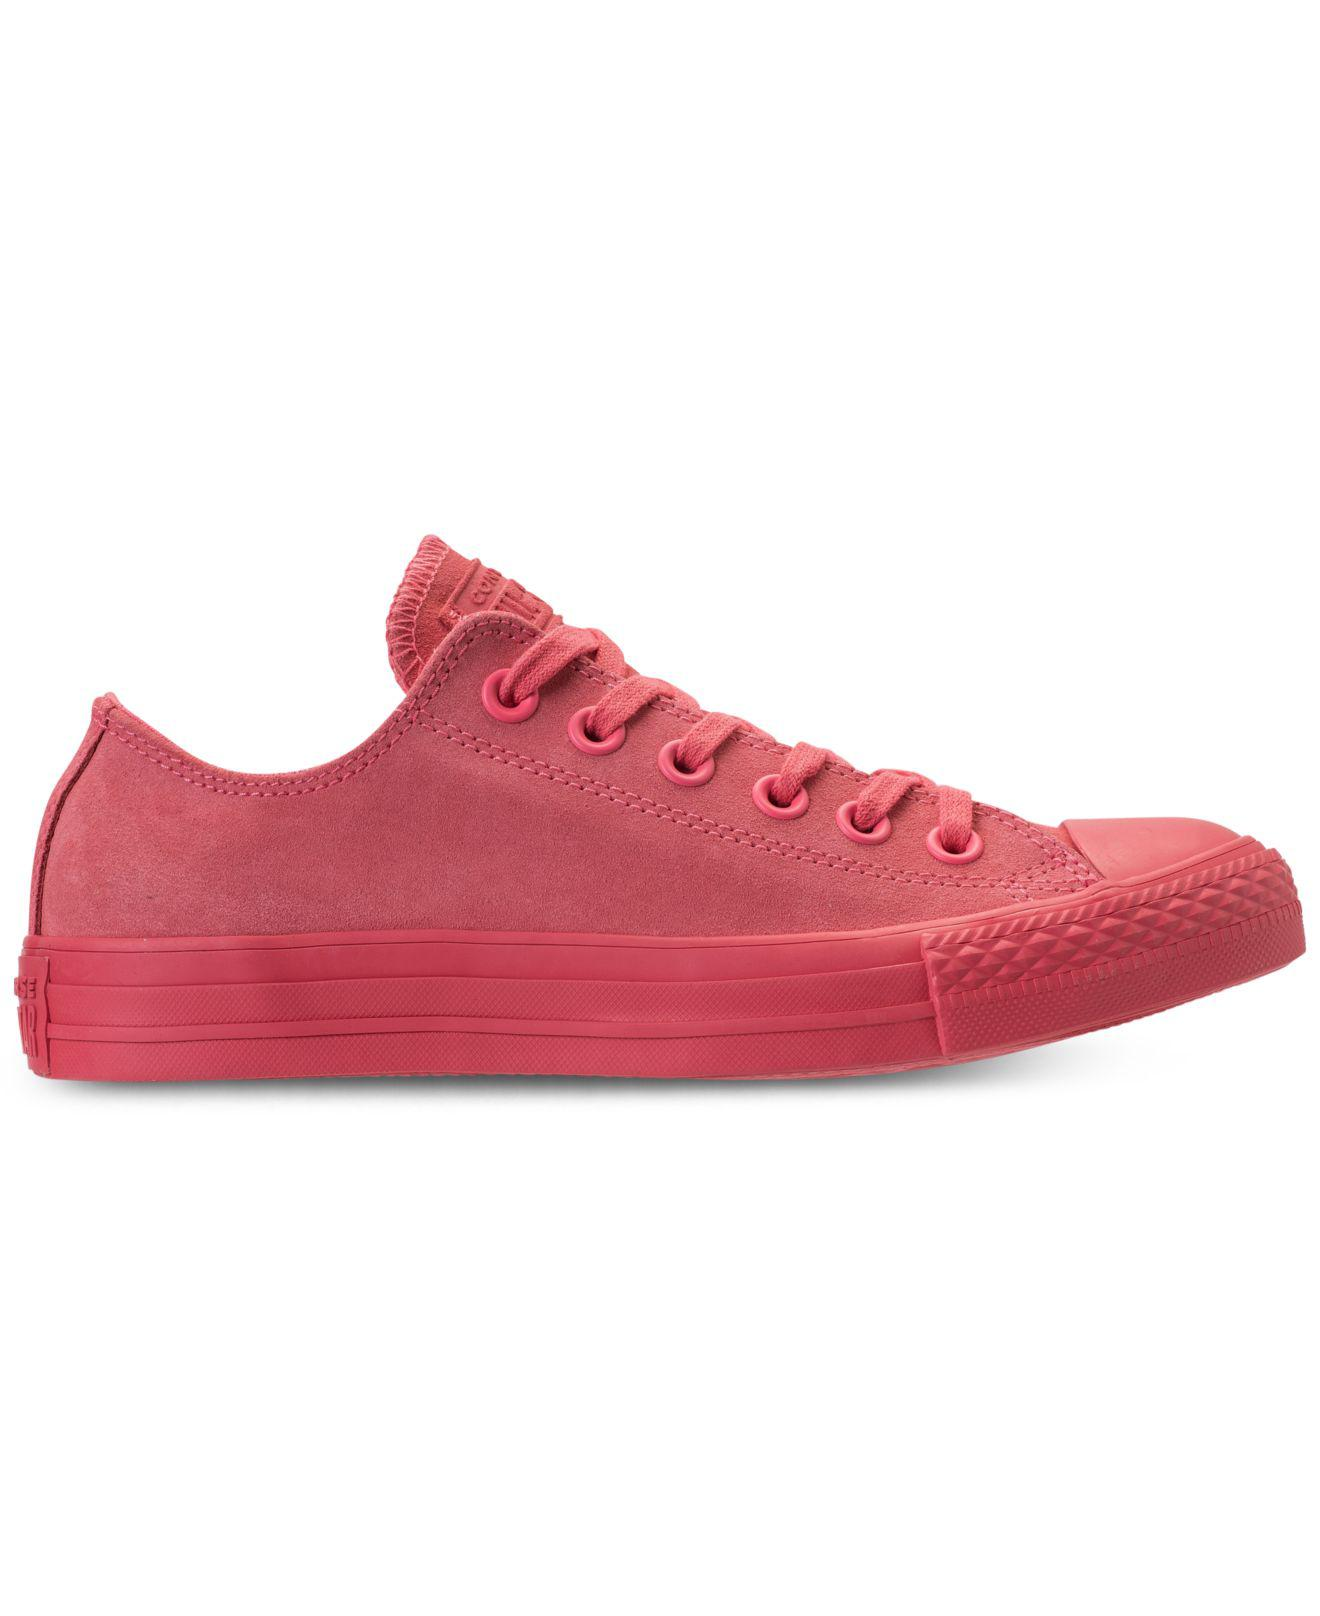 Lyst - Converse Chuck Taylor Ox Casual Sneakers From Finish Line in Pink 346ee517b